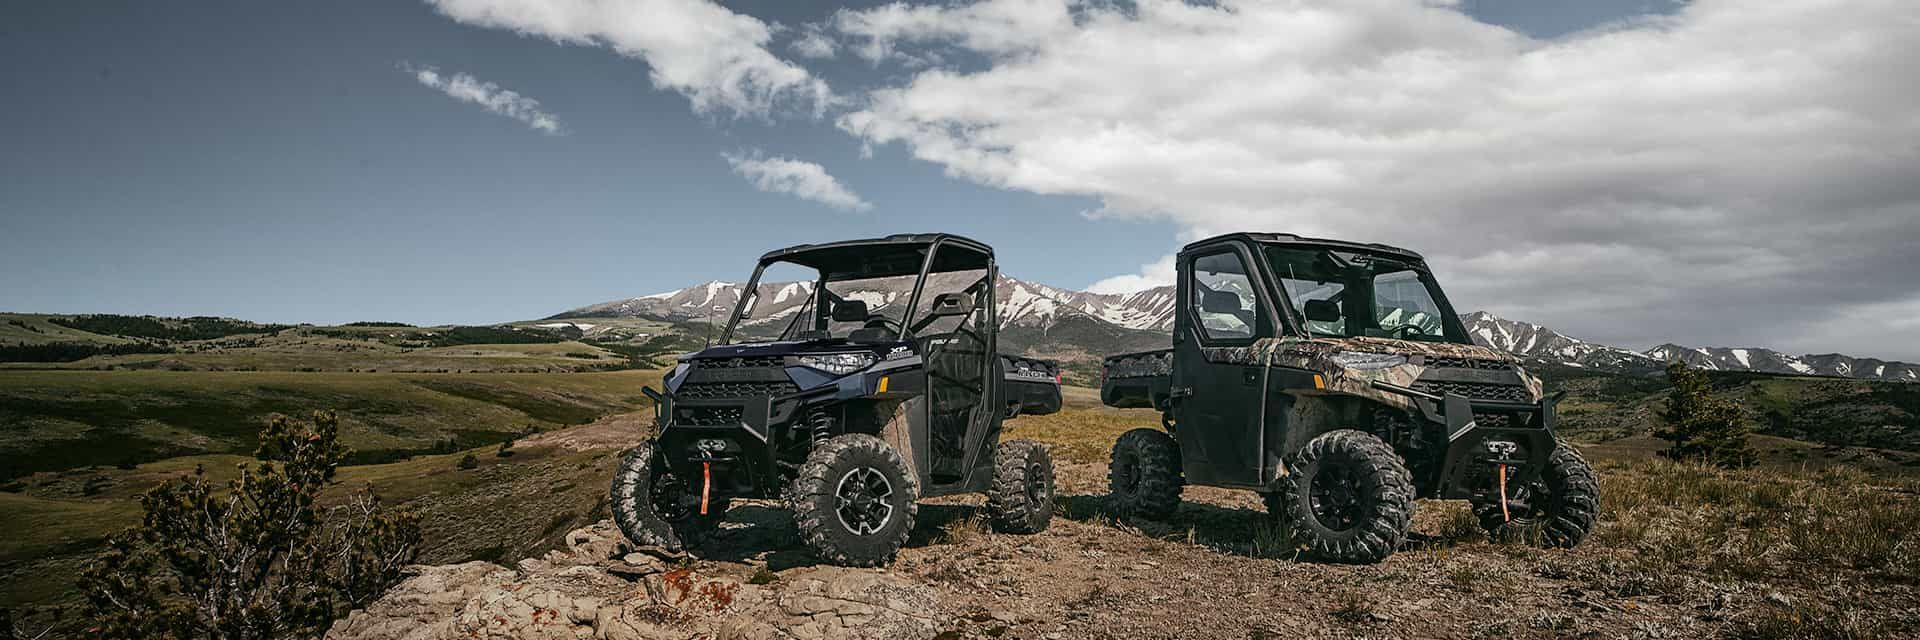 Polaris Utility Vehicles are available at Wilson's Marine | Newberry, SC